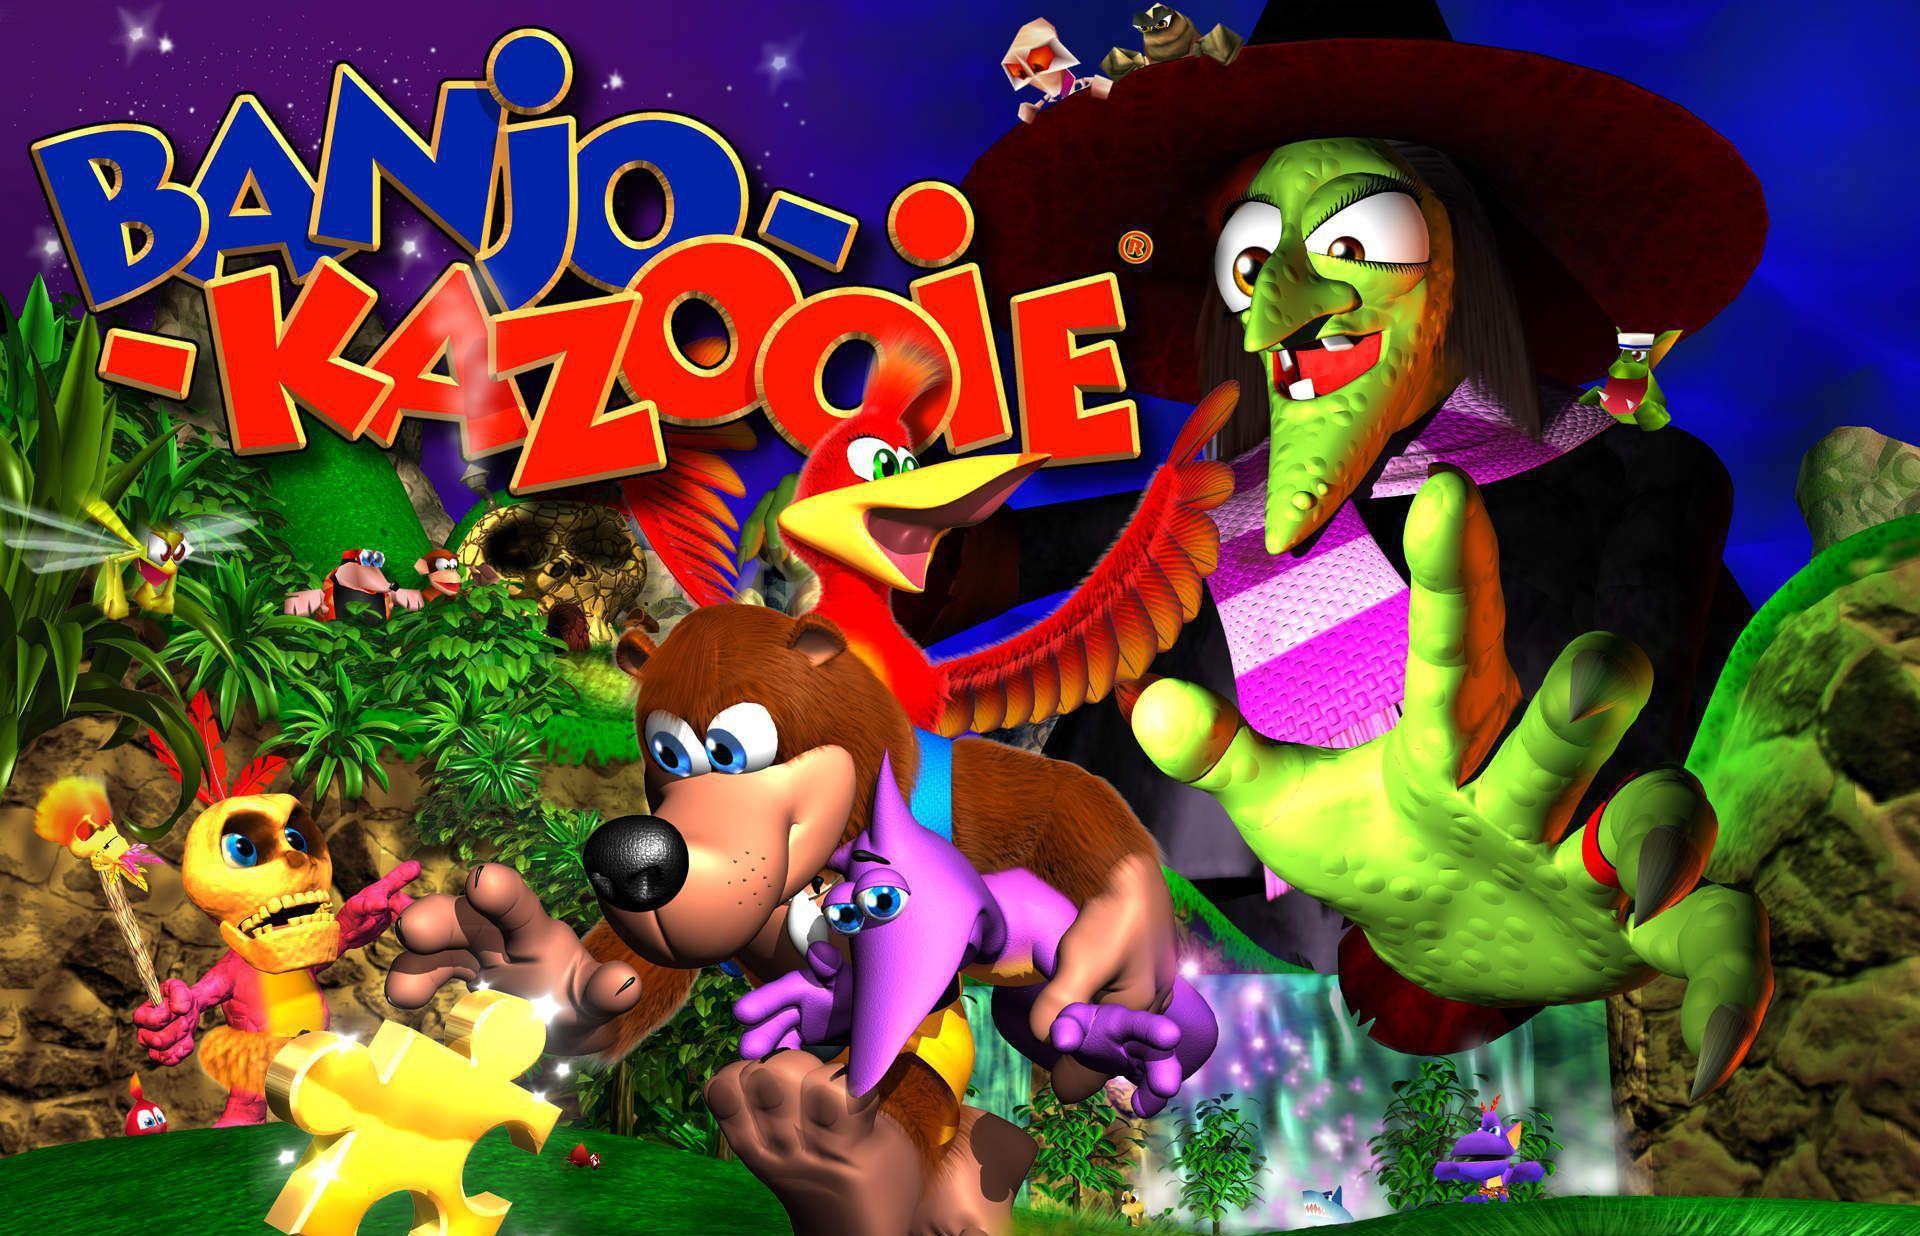 Banjo Kazooie Wallpaper Pack